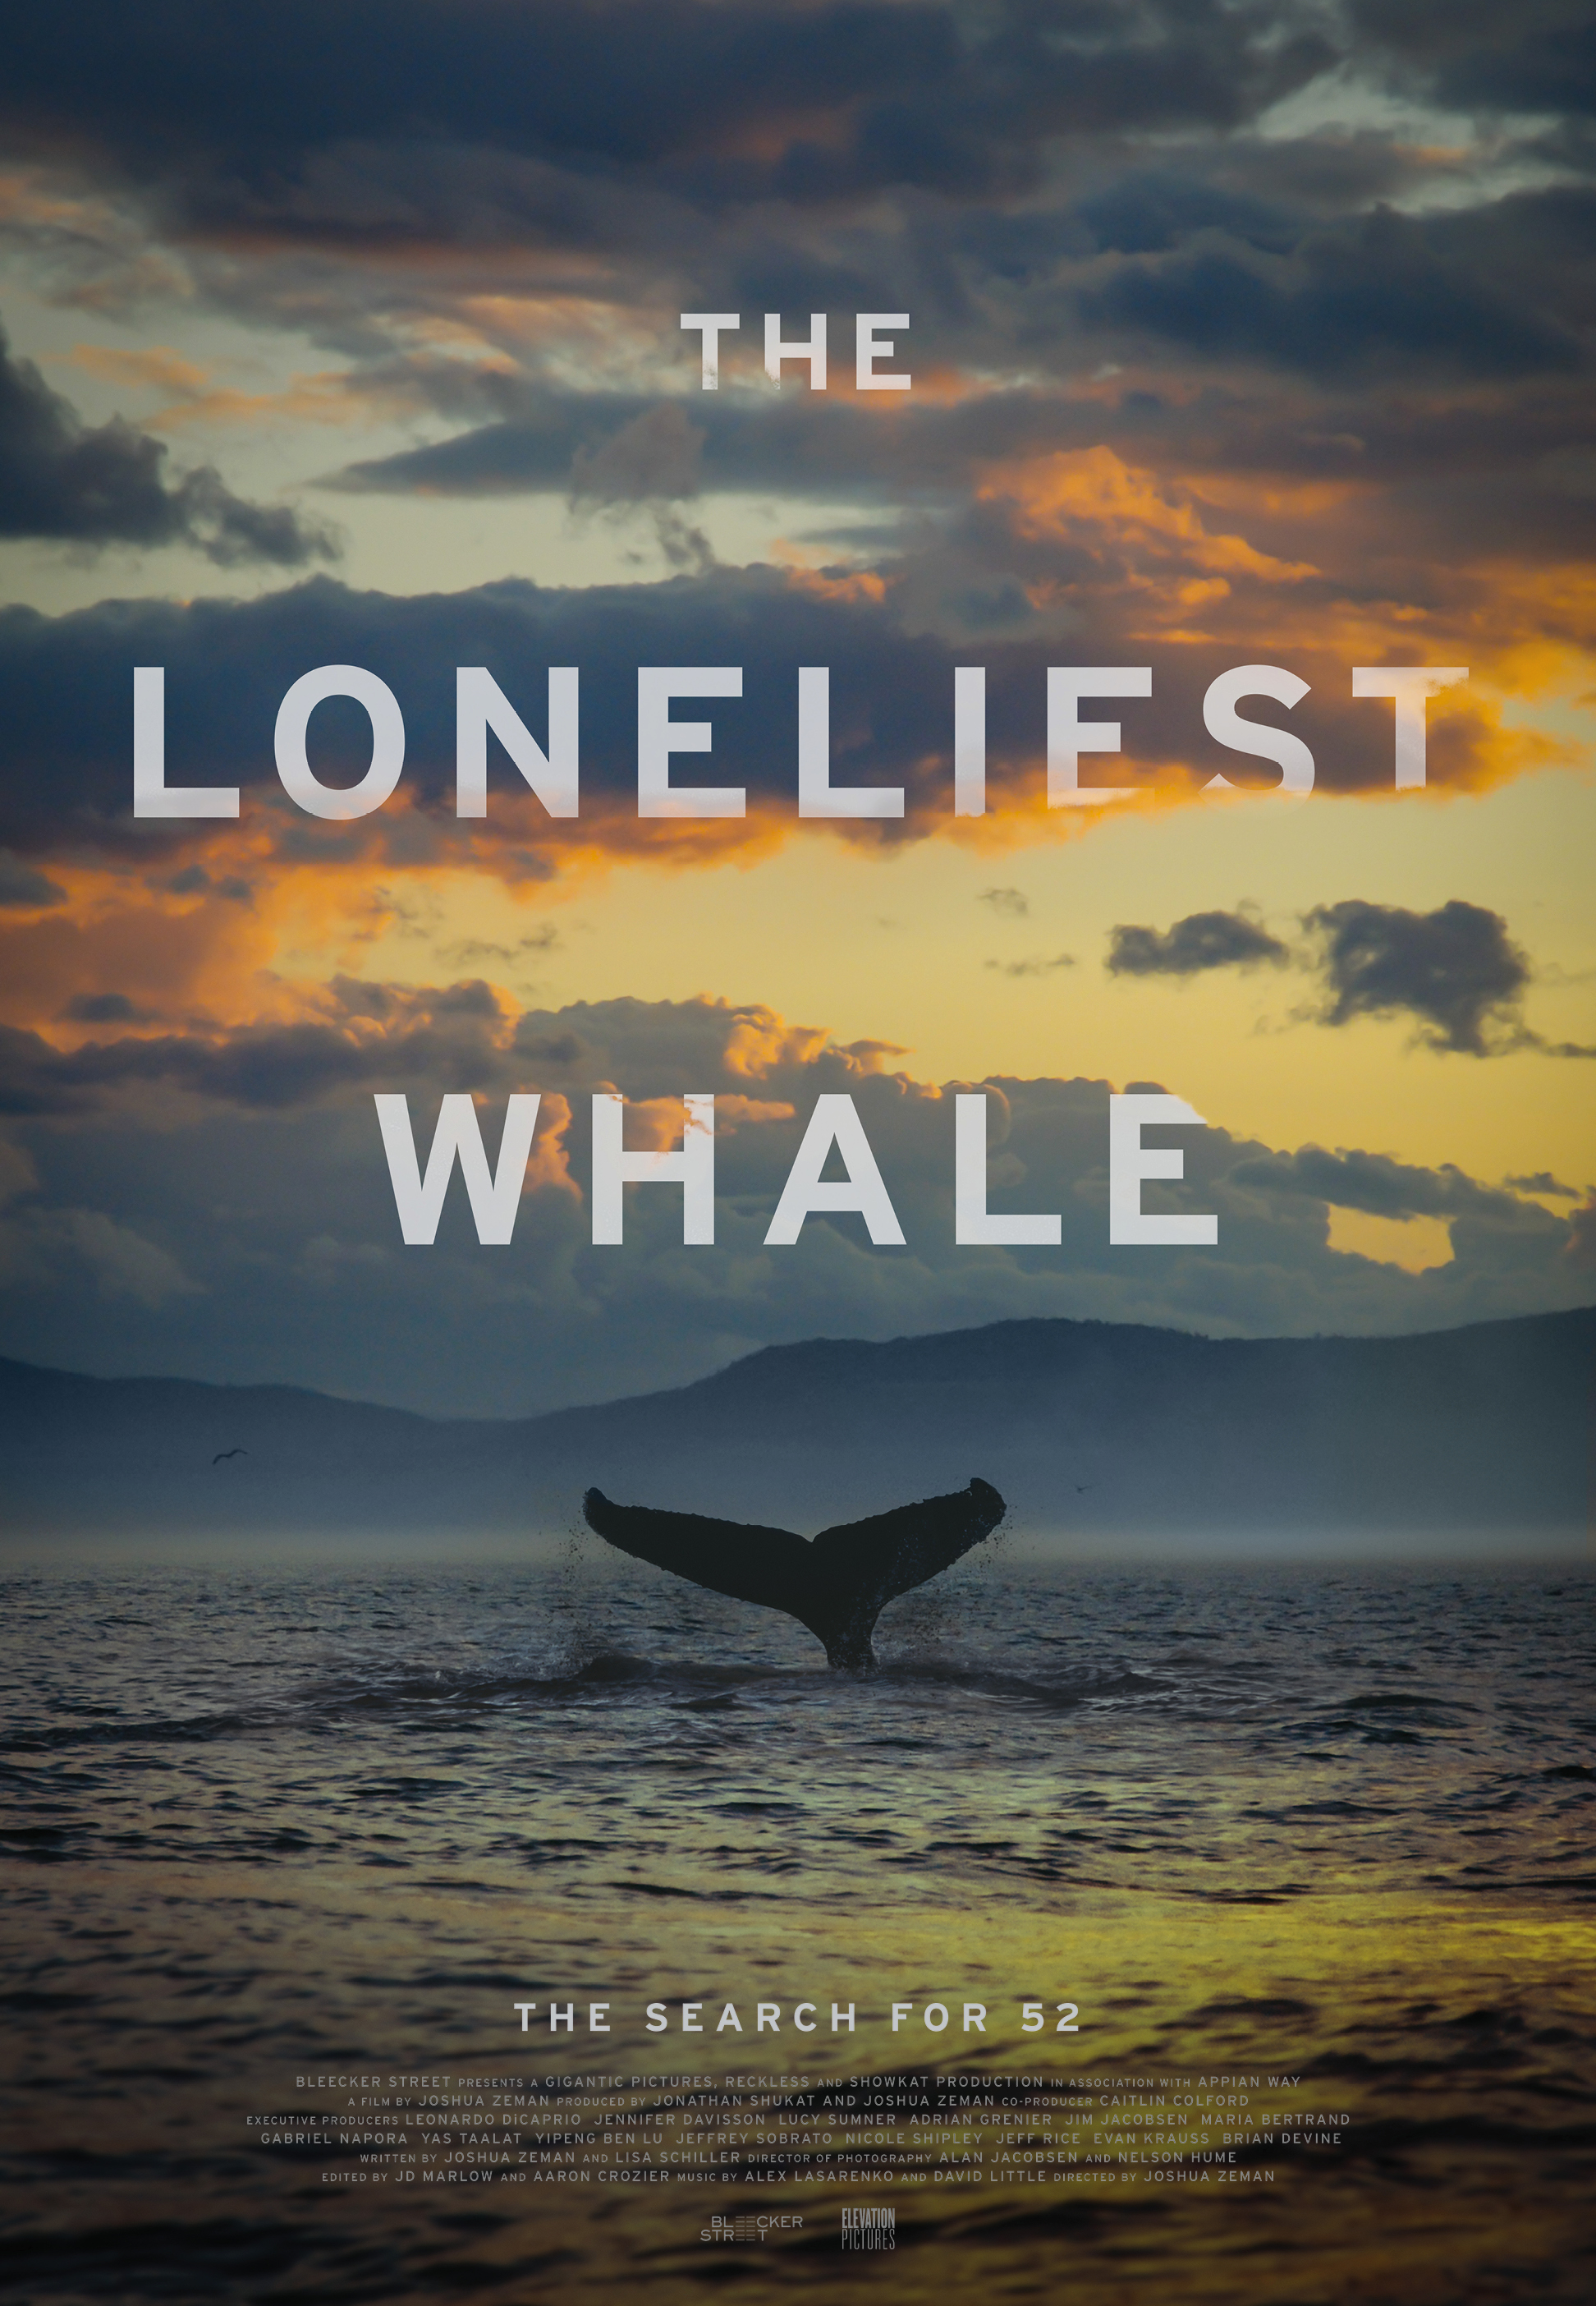 The Loneliest Whale